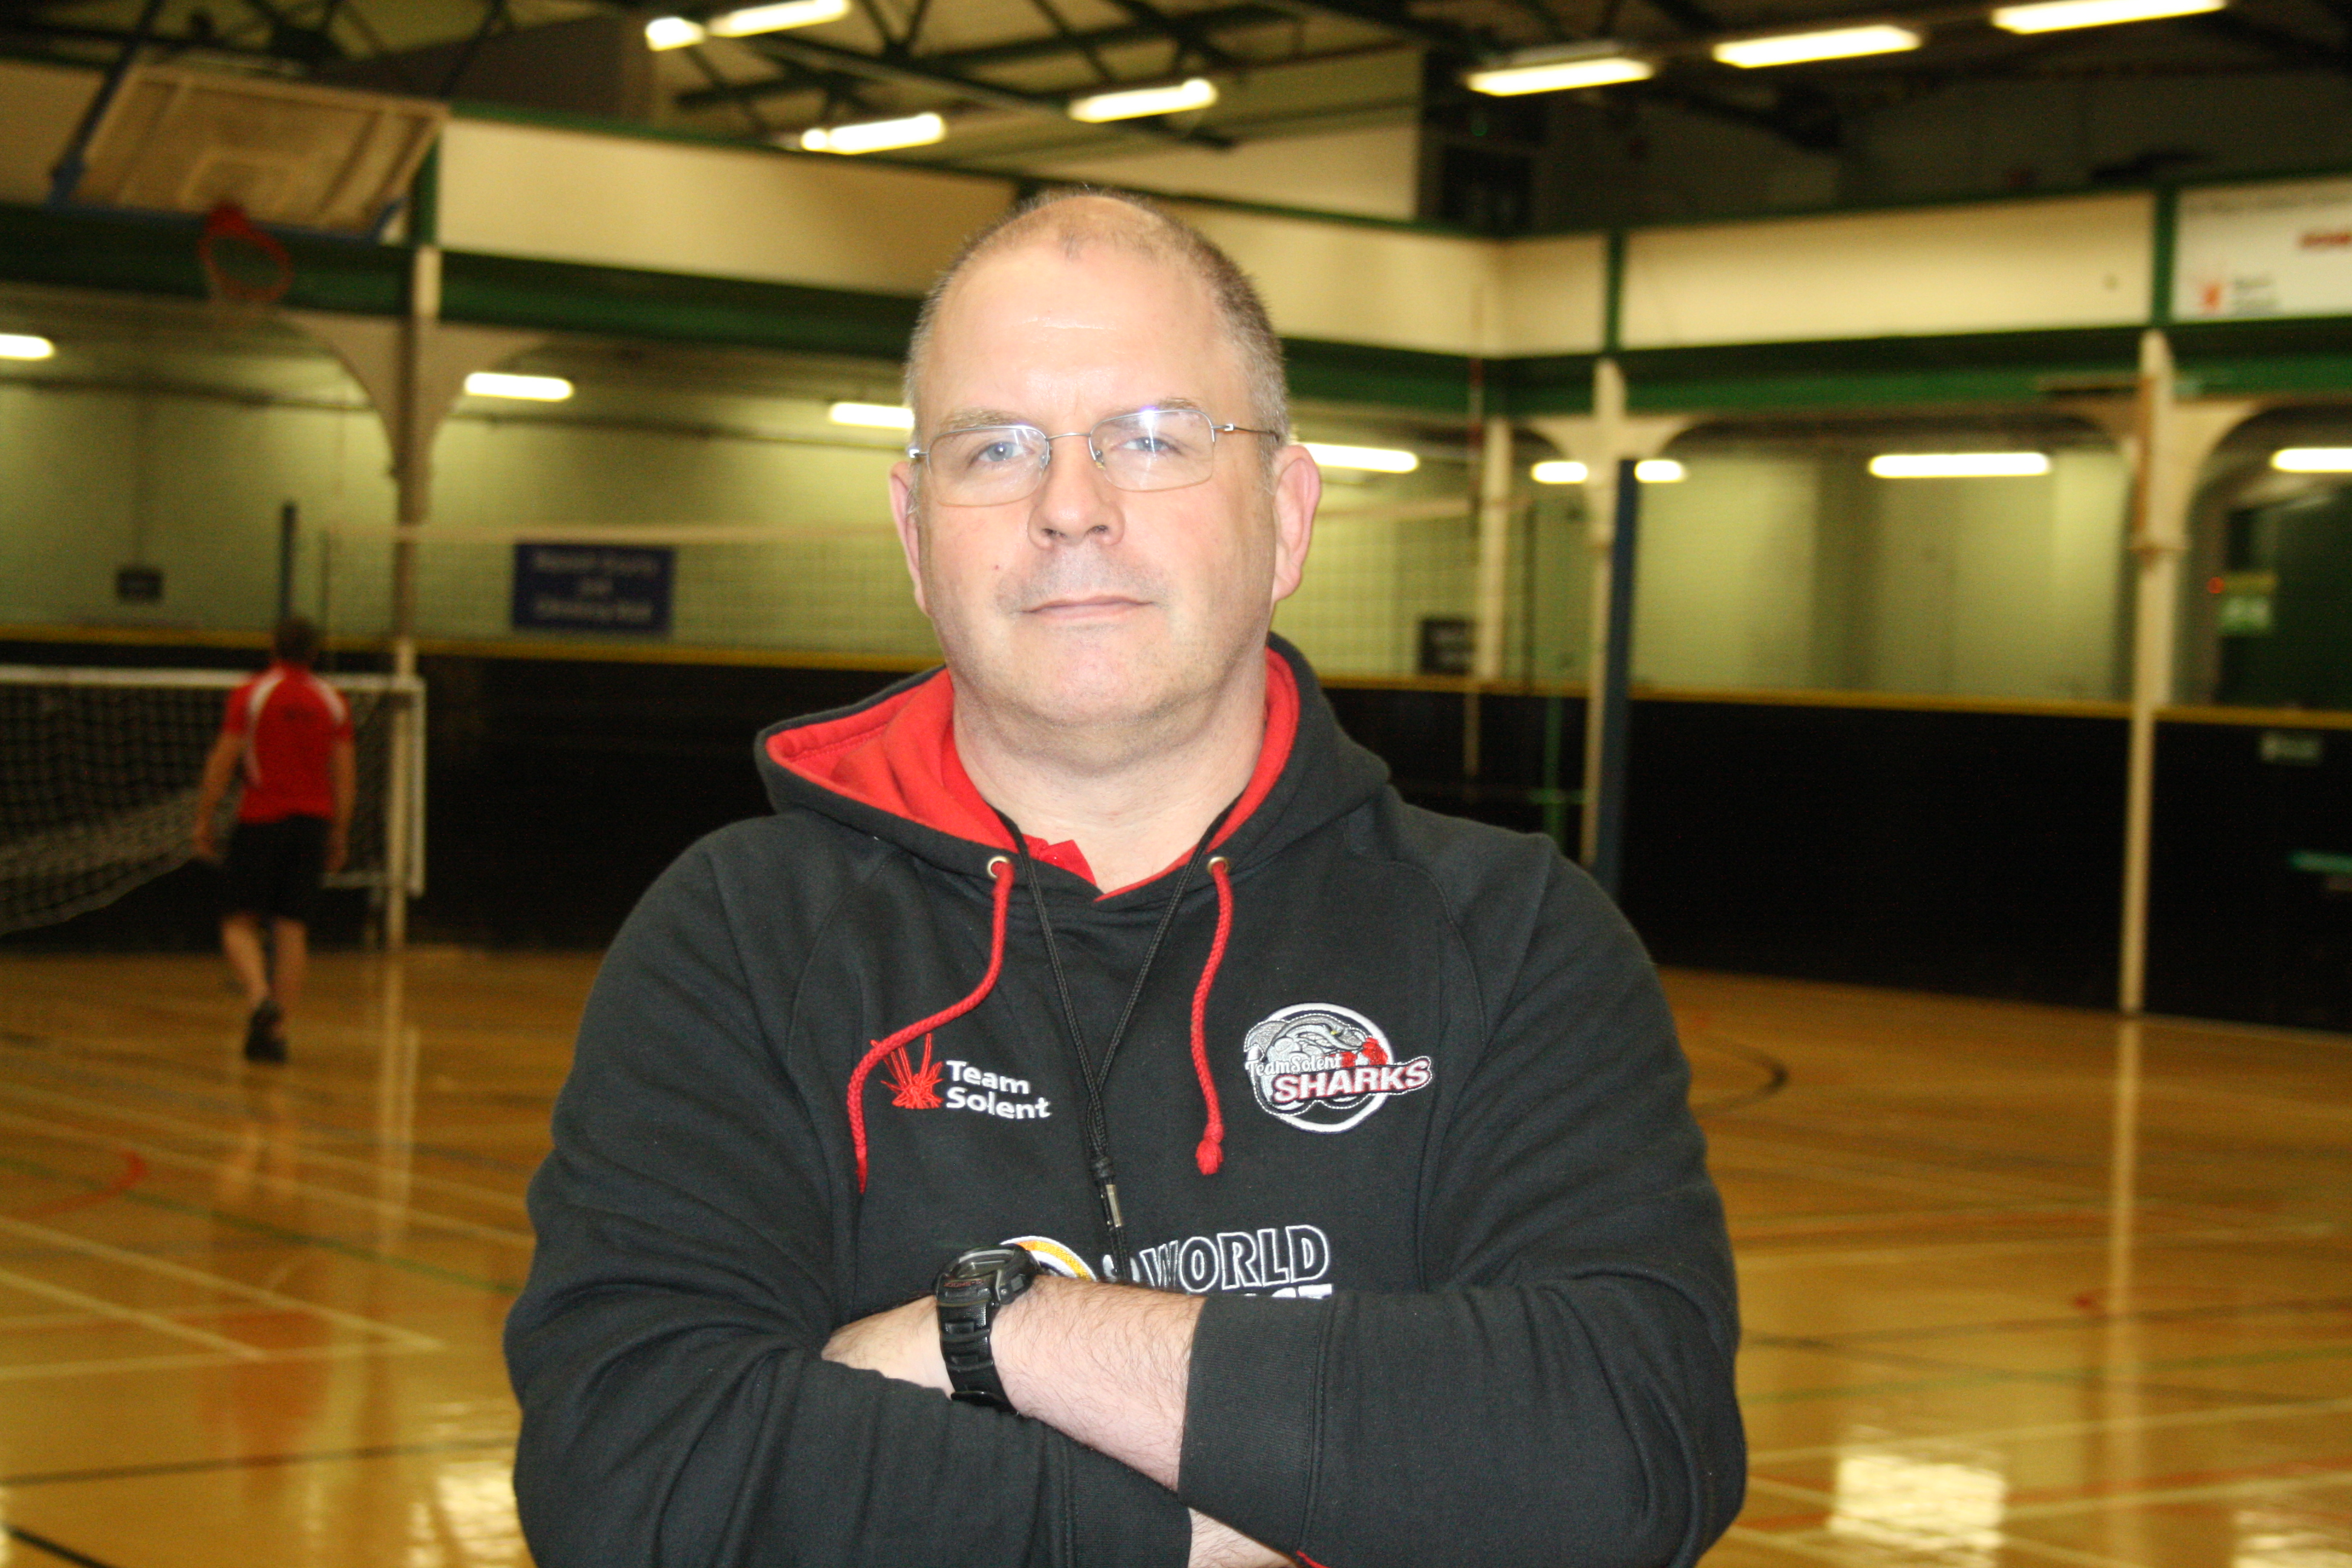 Southampton's wheelchair rugby team booms with success